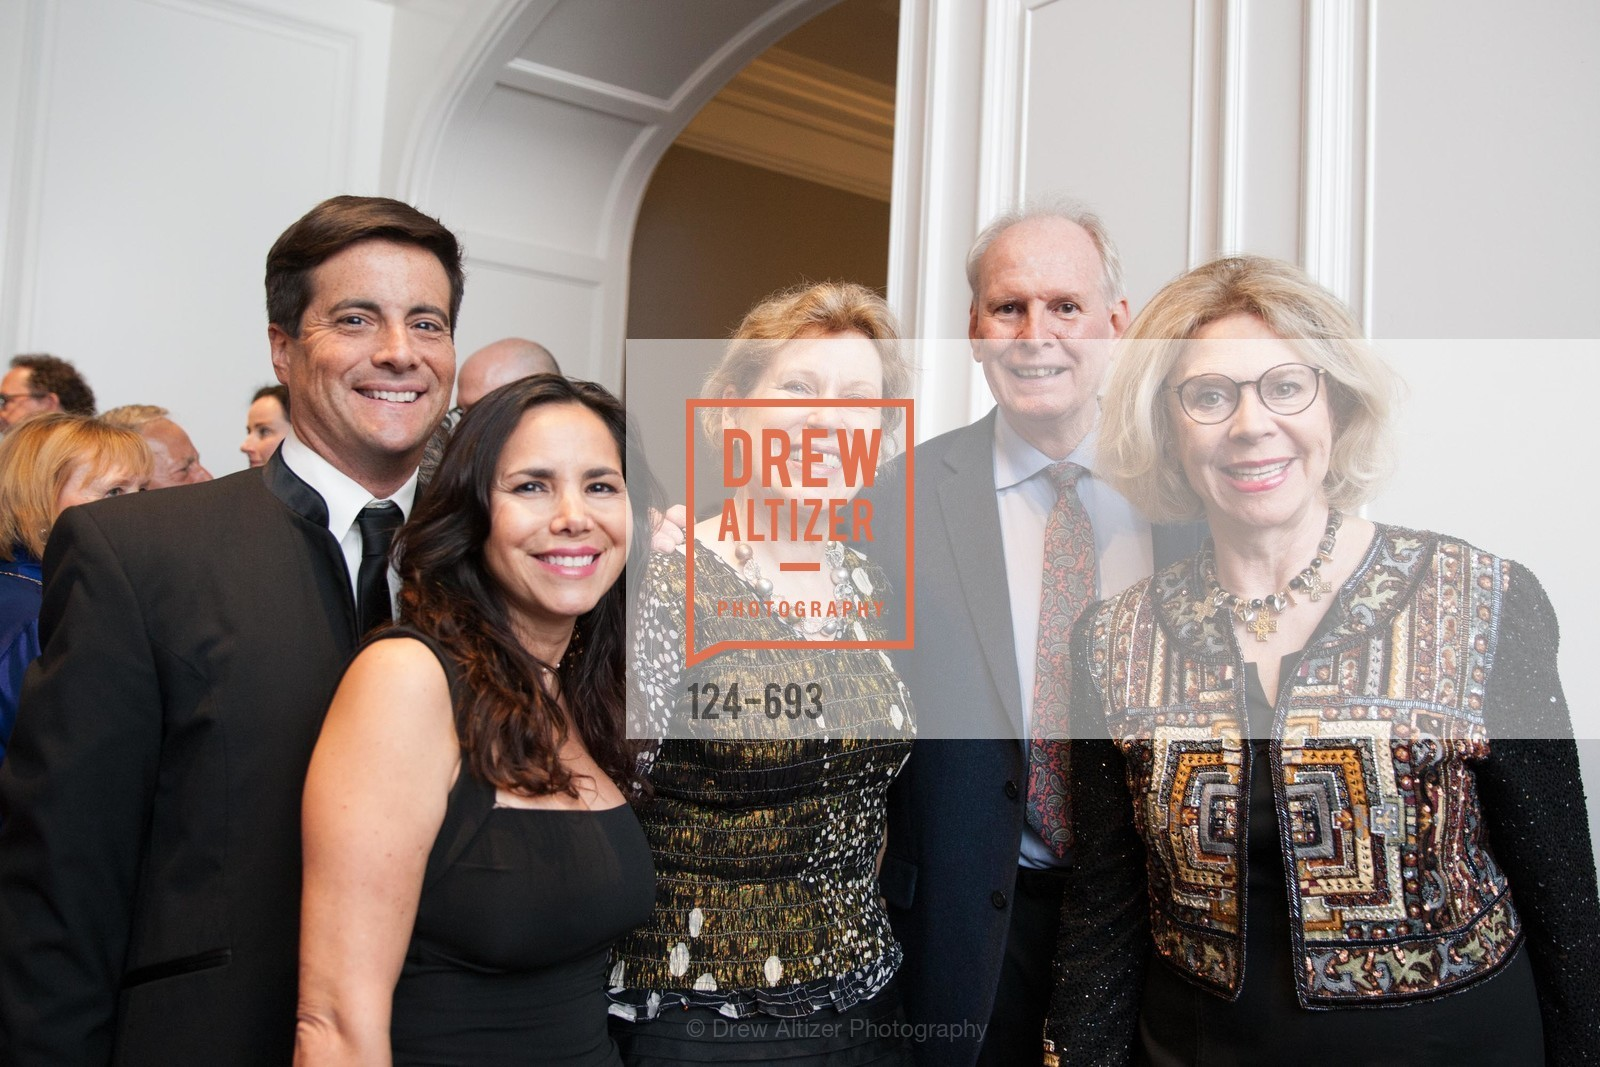 Joe Voca, Andrea Swetland, Susan Peterson, Randy Lynch, Catharina Swantrom, SFCASA'S Fostering Change Gala:  Room Without A Roof, US, May 2nd, 2015,Drew Altizer, Drew Altizer Photography, full-service agency, private events, San Francisco photographer, photographer california